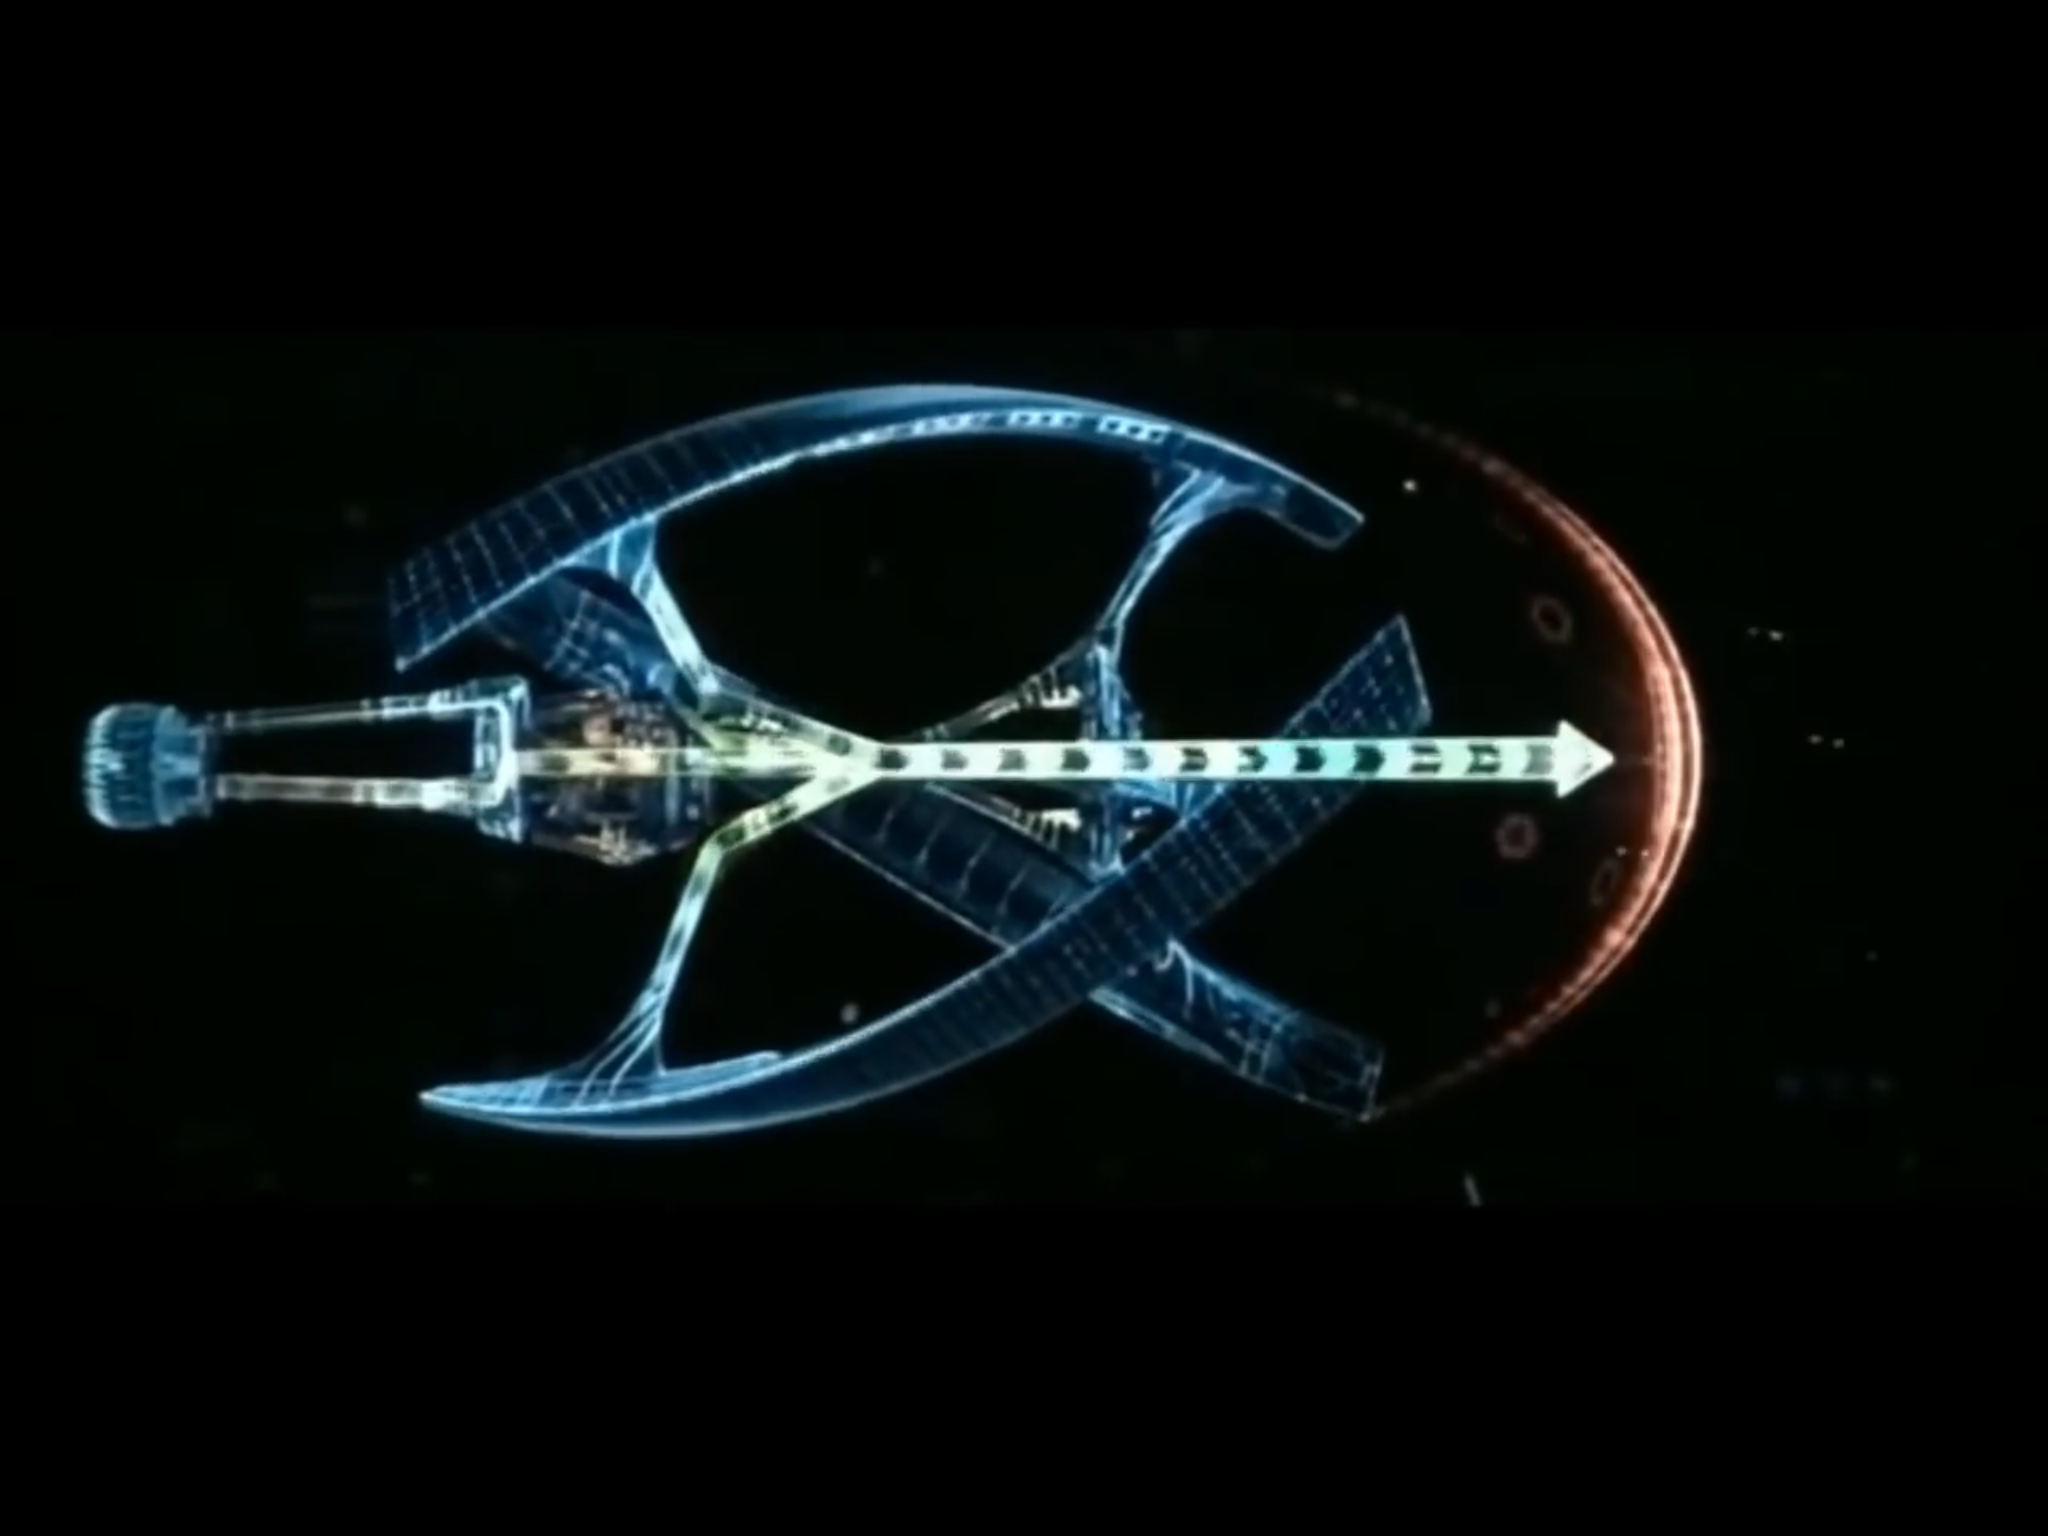 Movie passengers avalon diverting power to main shield for Passengers spaceship